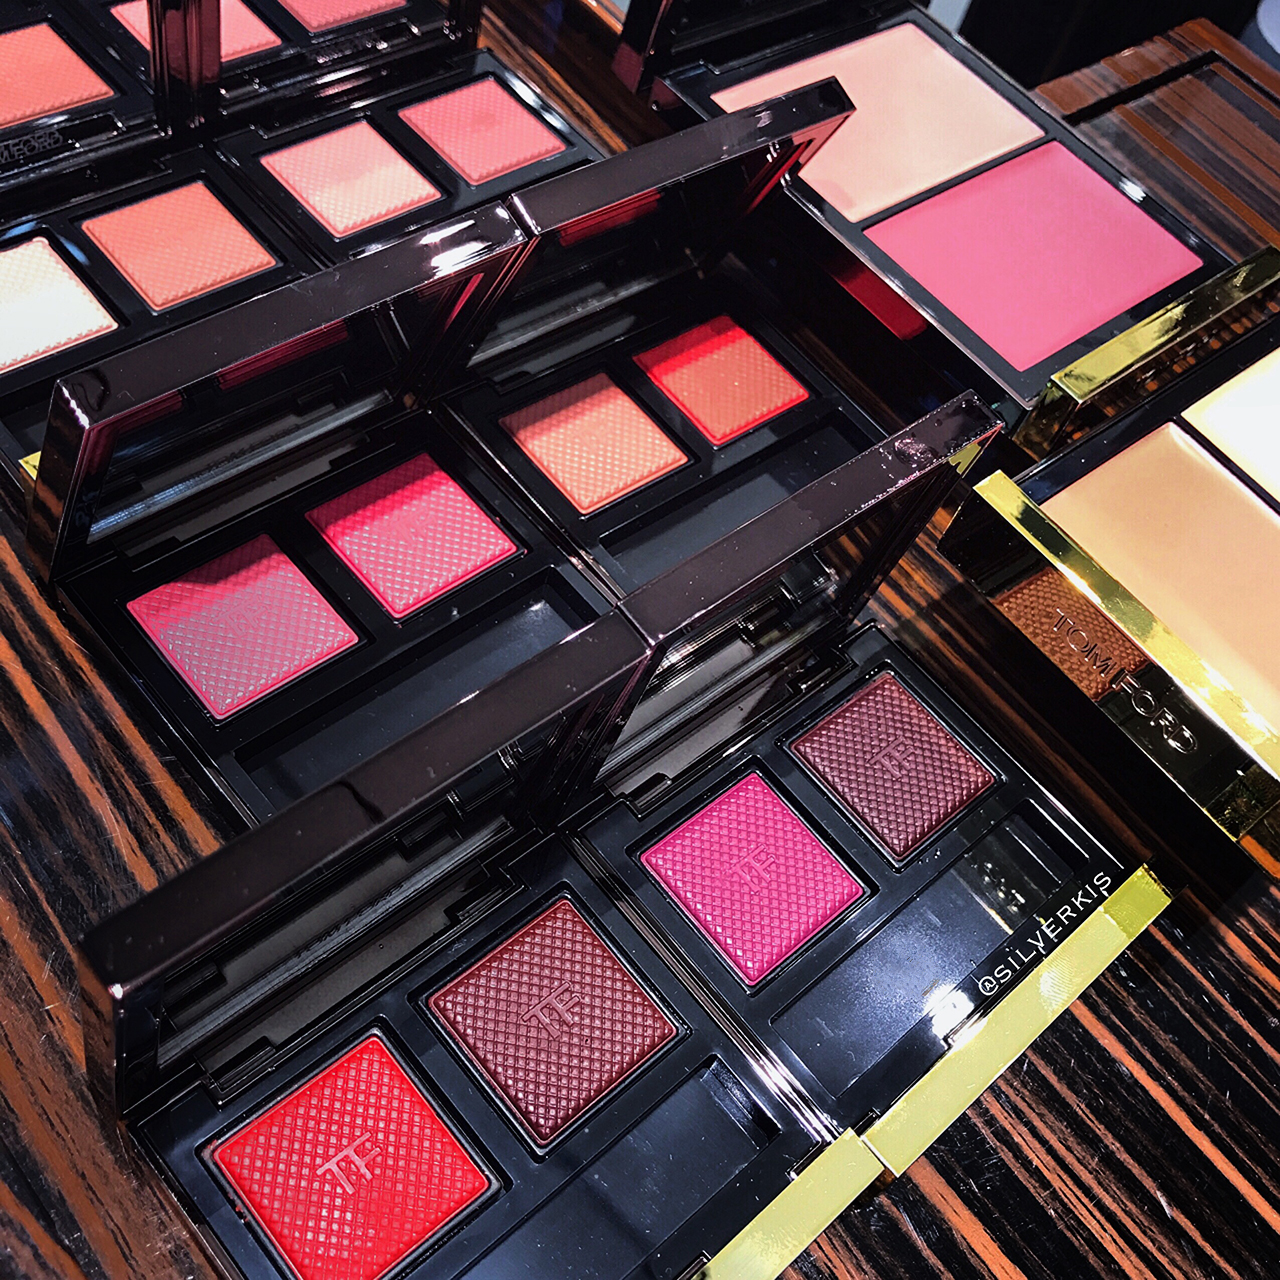 Tom Ford Shade & Illuminate Lips and Shade & Illuminate Cheeks for Spring 2017